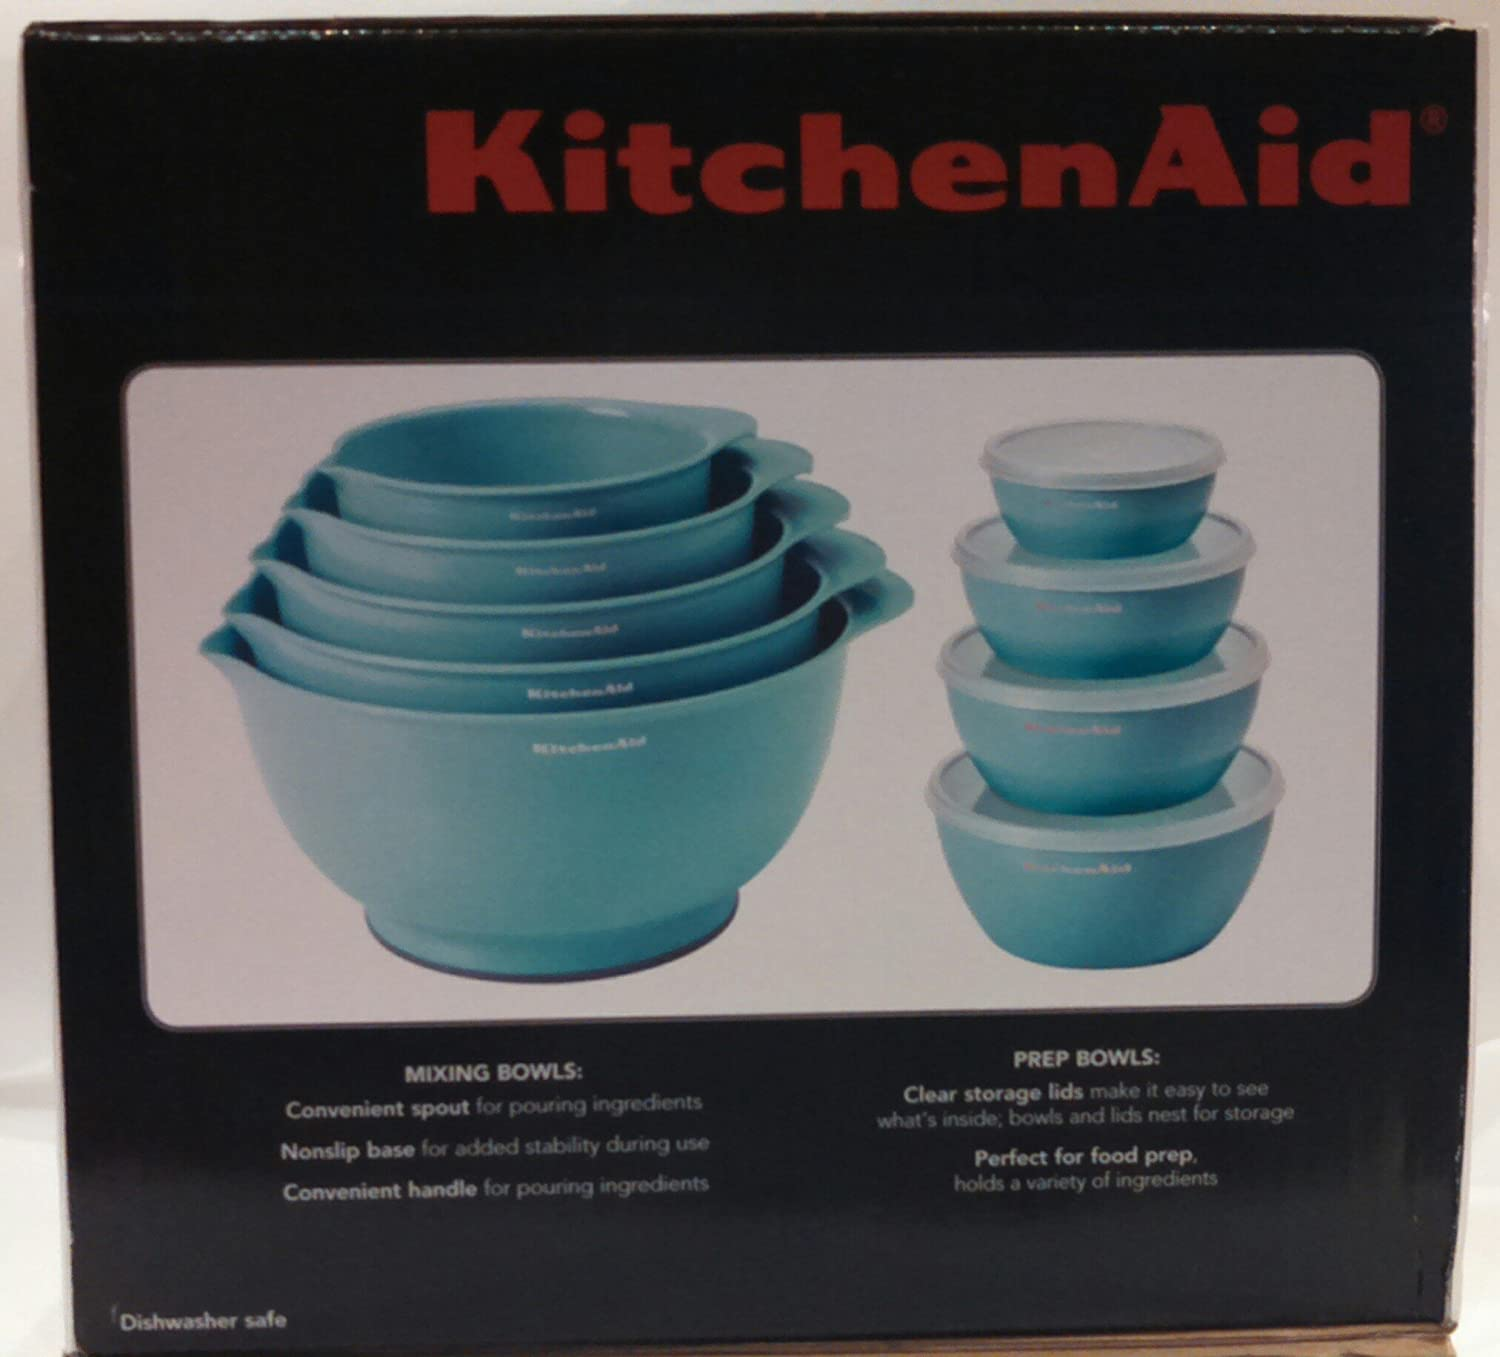 Amazon.com: KitchenAid 13 Piece Mixing and Prep Bowl Set Aqua Sky ...